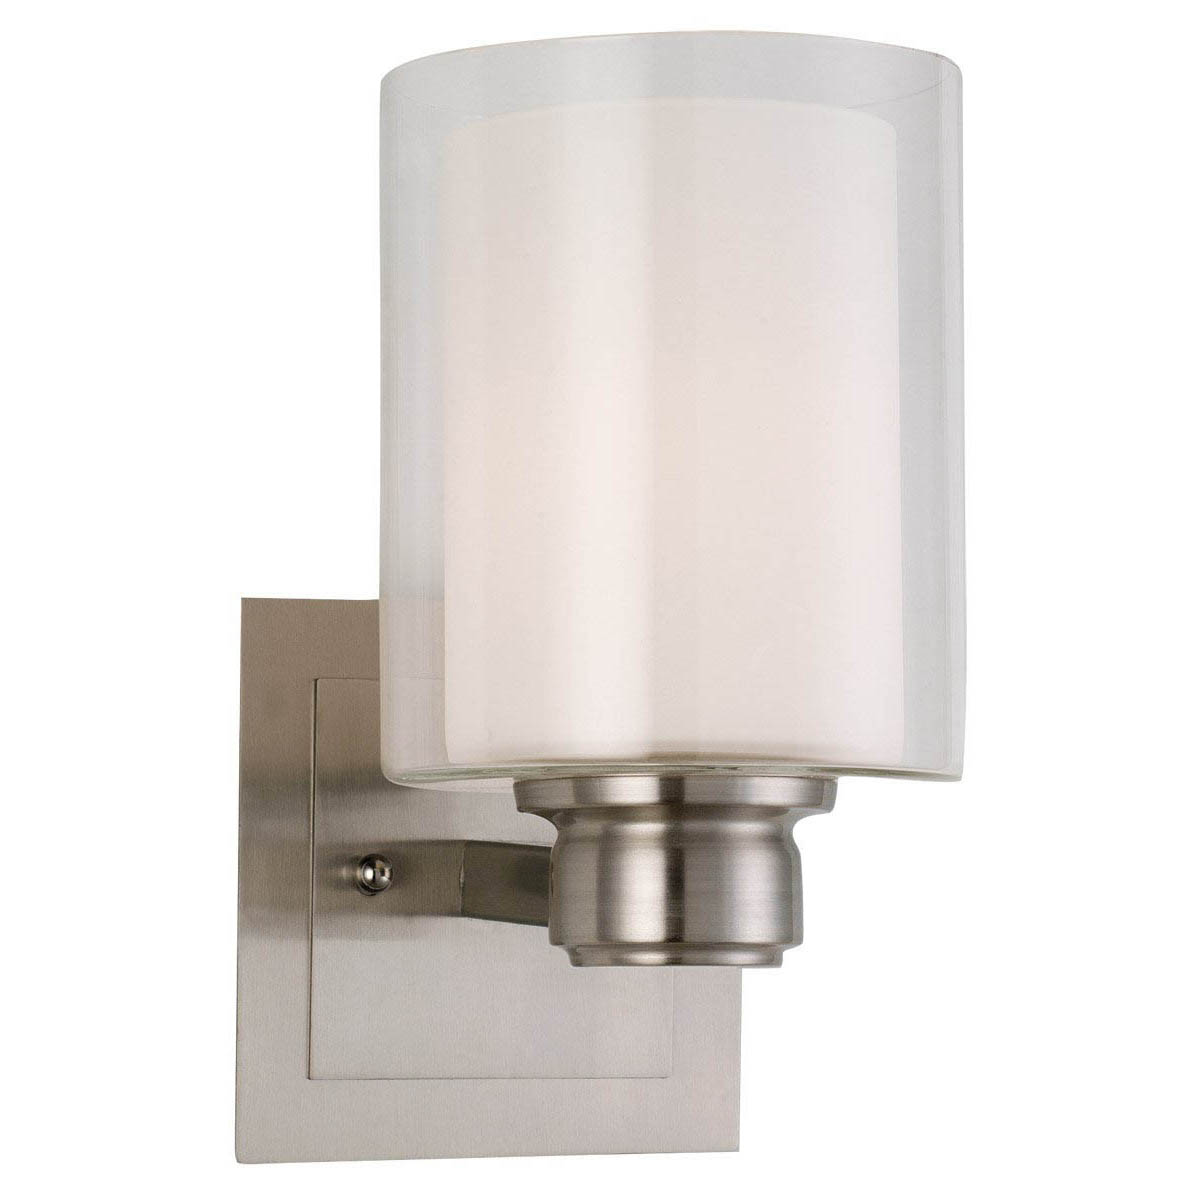 Design House Oslo 1 Light Indoor Wall Mount in Satin Nickel - 556134